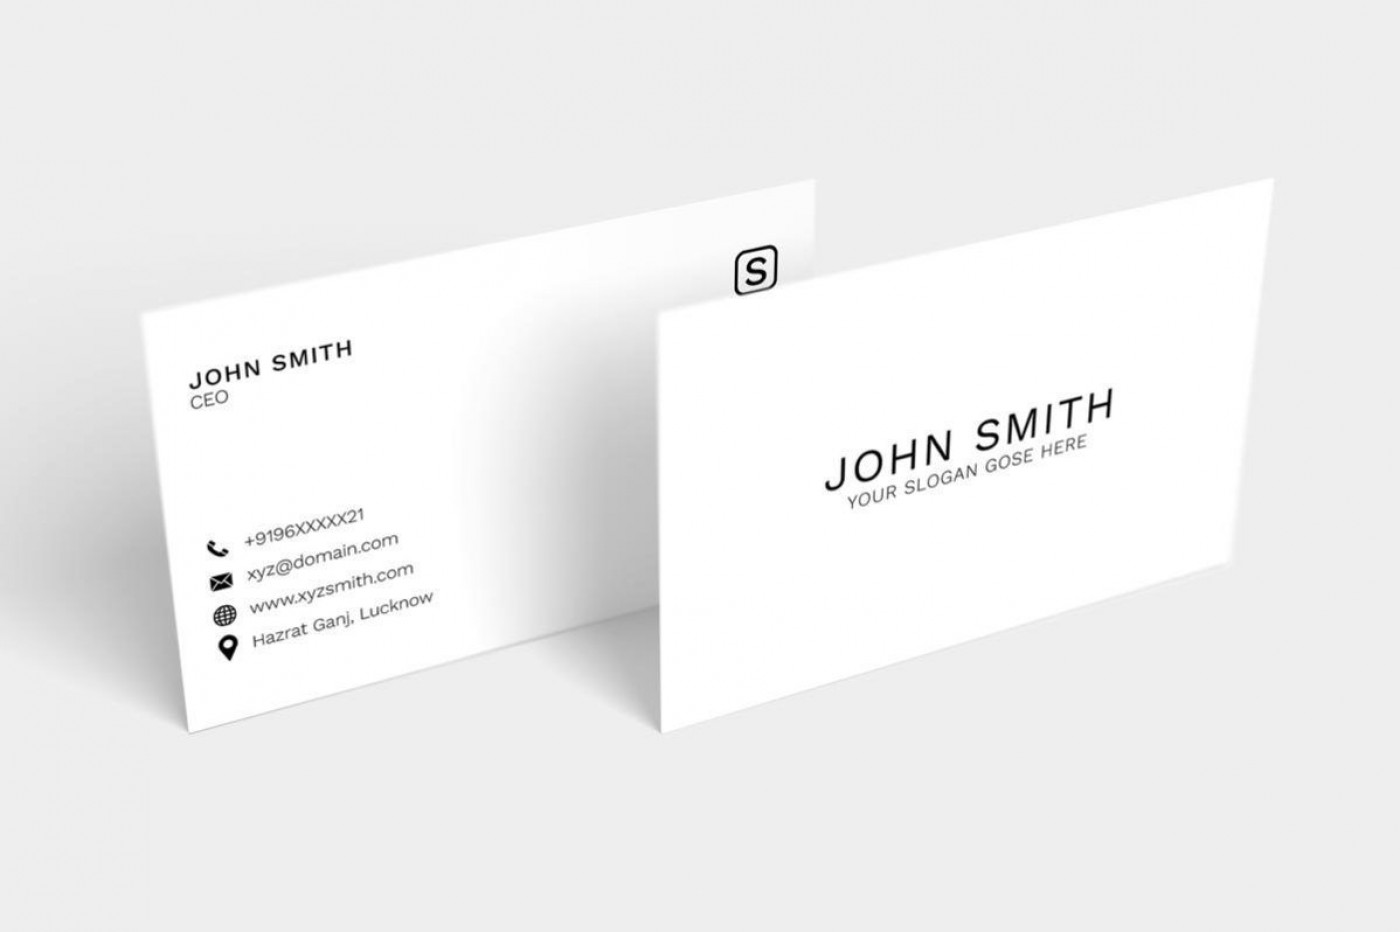 003 Unforgettable Simple Busines Card Template Psd High Def  Design In Photoshop Minimalist Free1400